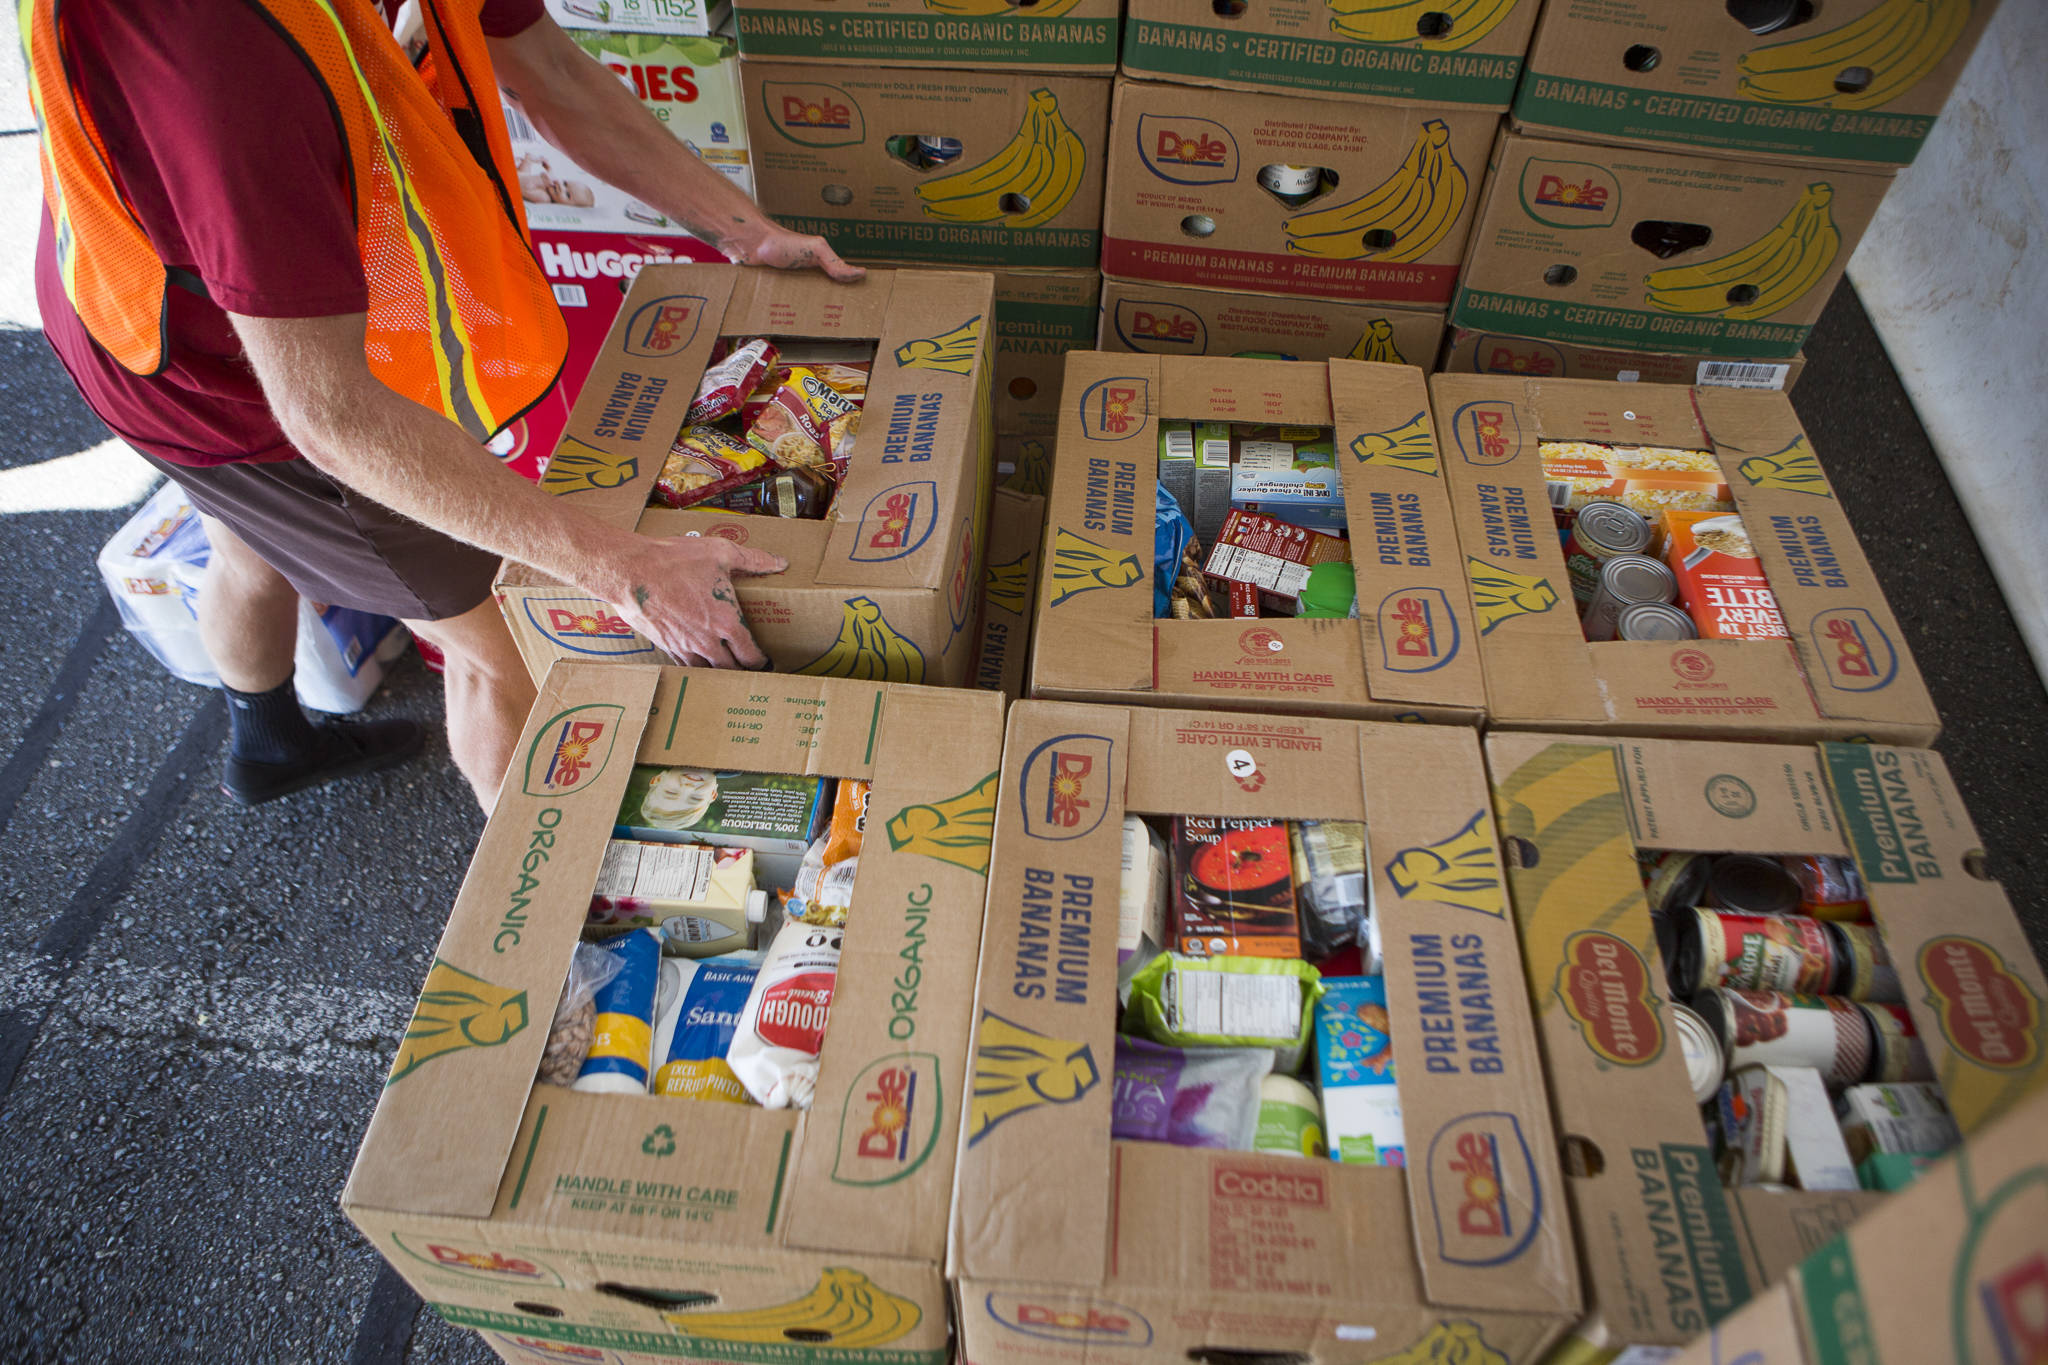 Boxes full of food donations are stacked Thursday during the drive-thru Snohomish County Food Drive in Monroe. (Olivia Vanni / The Herald)